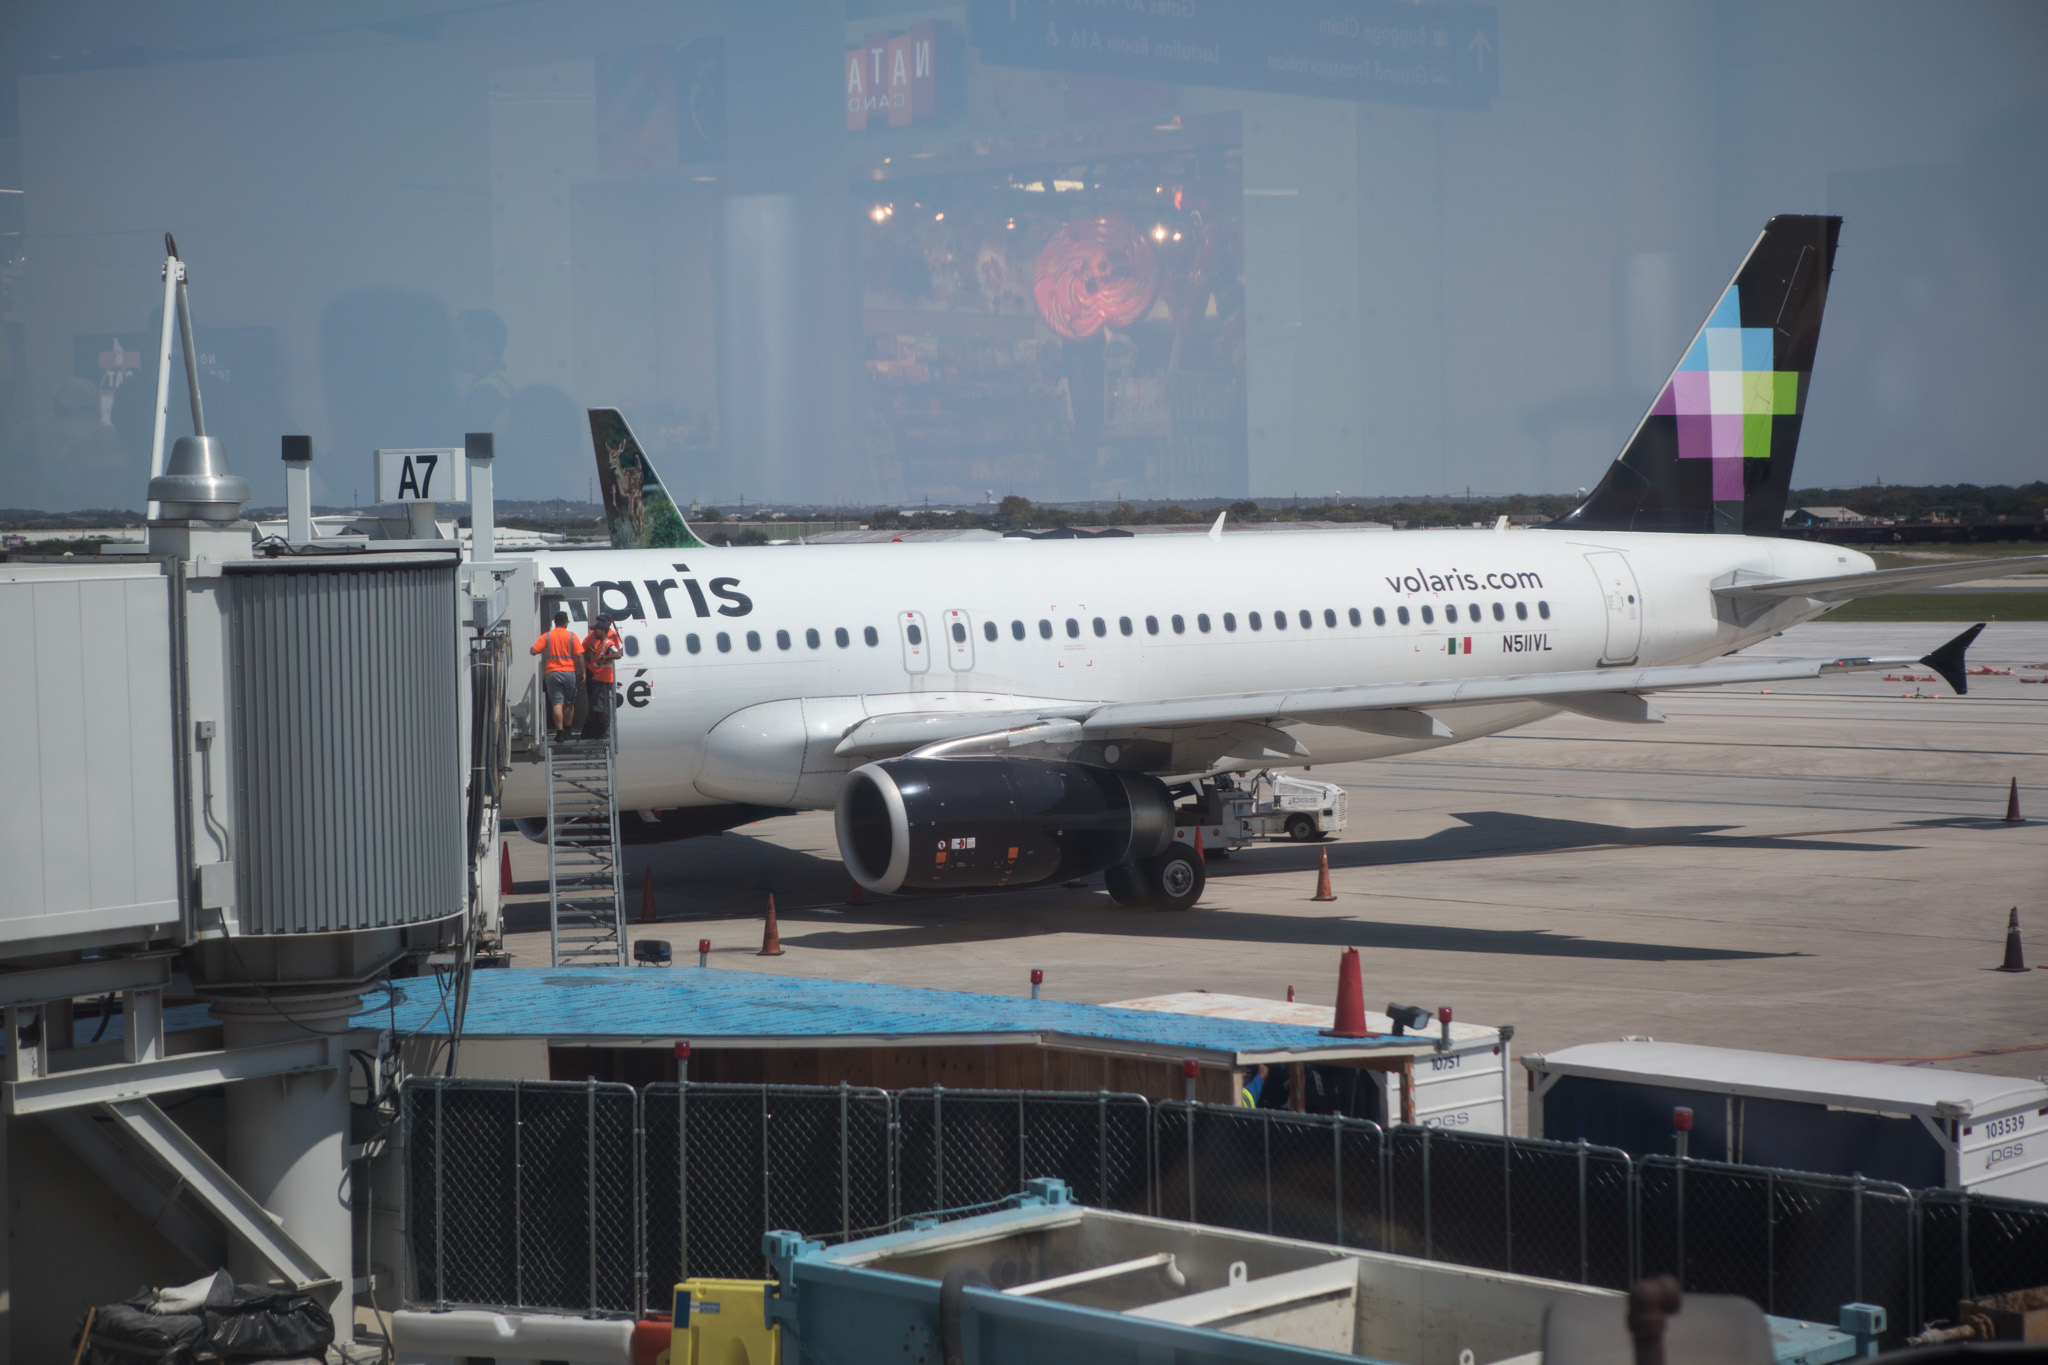 The first Volaris direct flight from Mexico City to San Antonio is checked by customs at the gate.